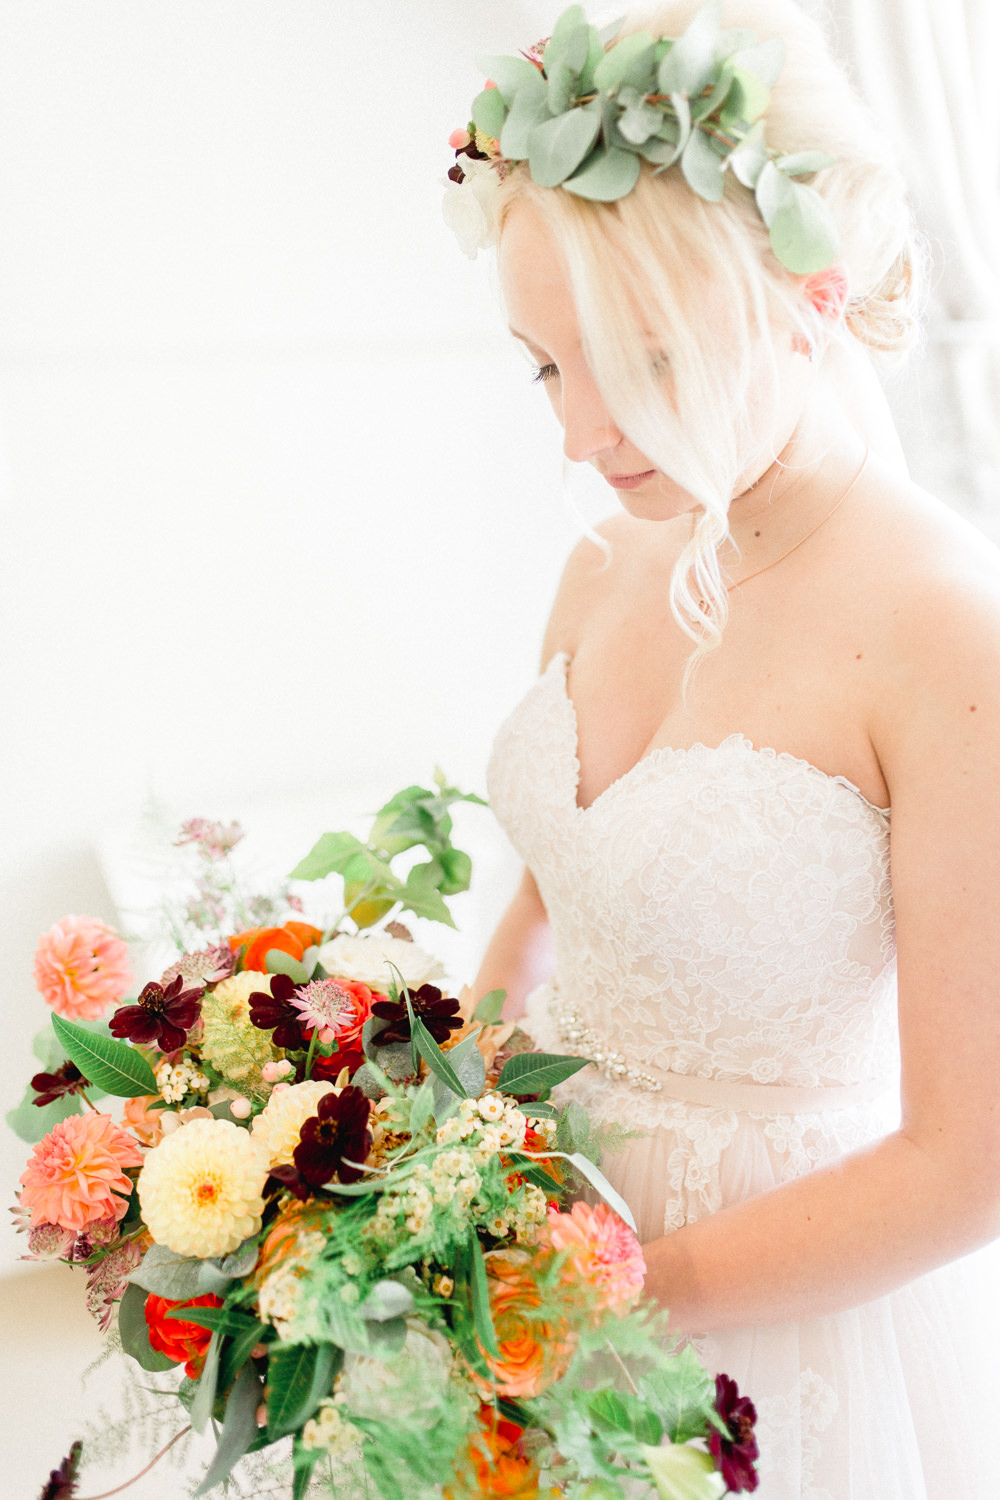 Bride Bridal Flower Crown Greenery Bouquet Flowers Bride Bridal Red Orange Dahlia Rose Fern Yellow Autumnal Boho Wedding Ivory White Photography